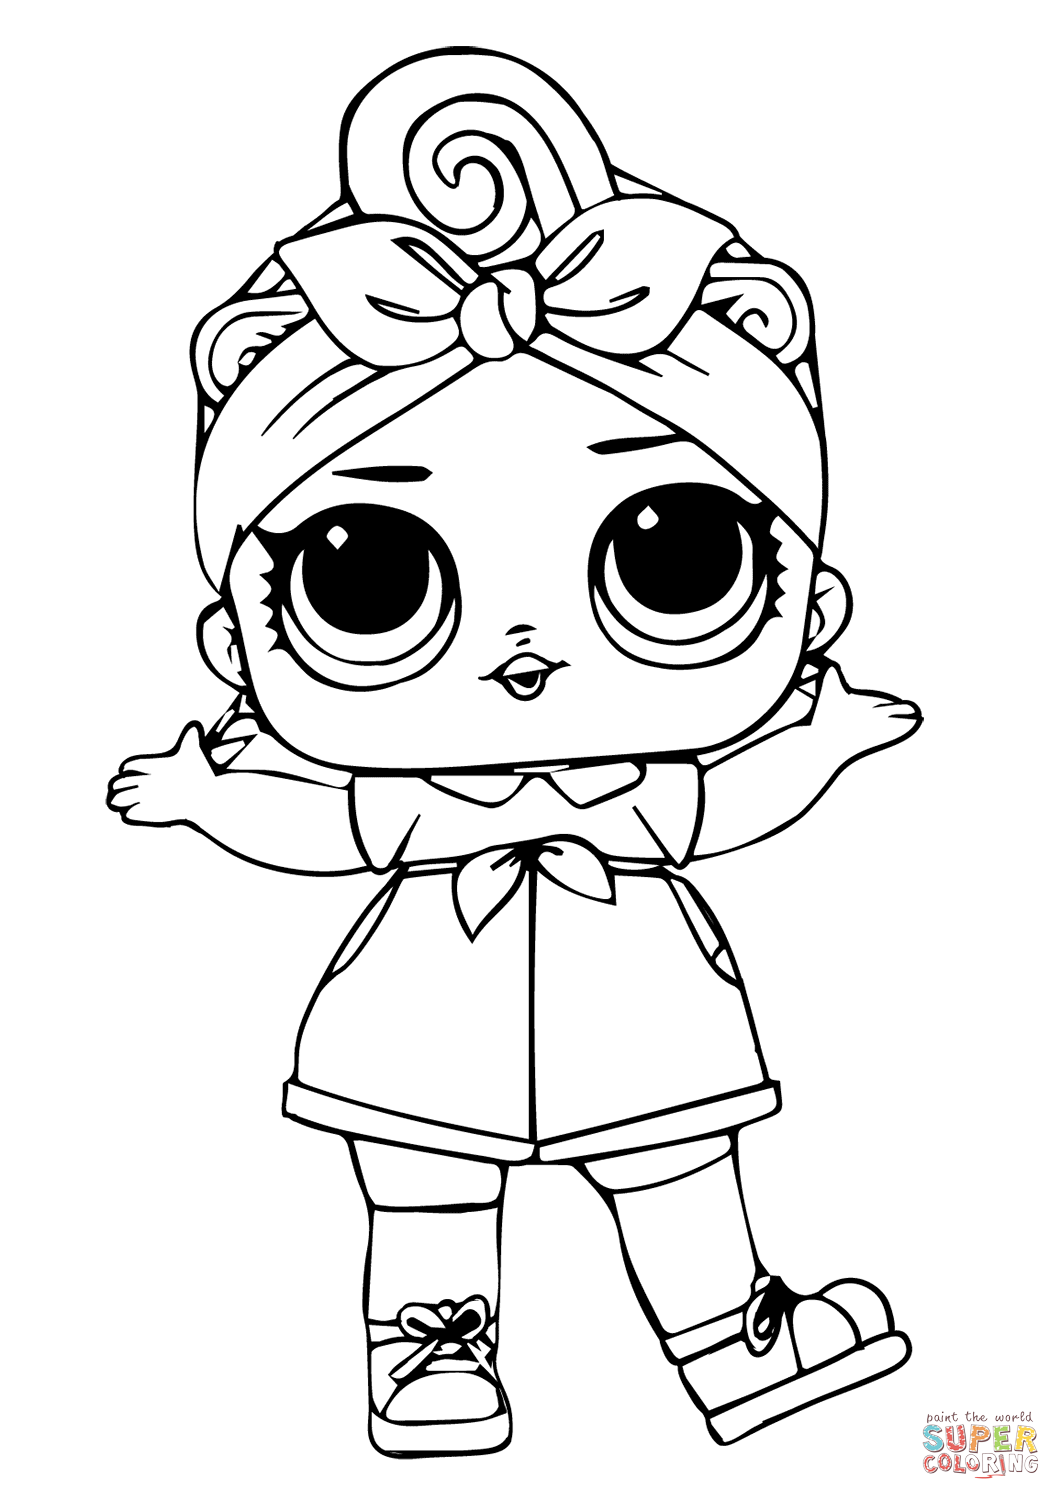 Can Do Baby Lol Surprise Doll Coloring Page